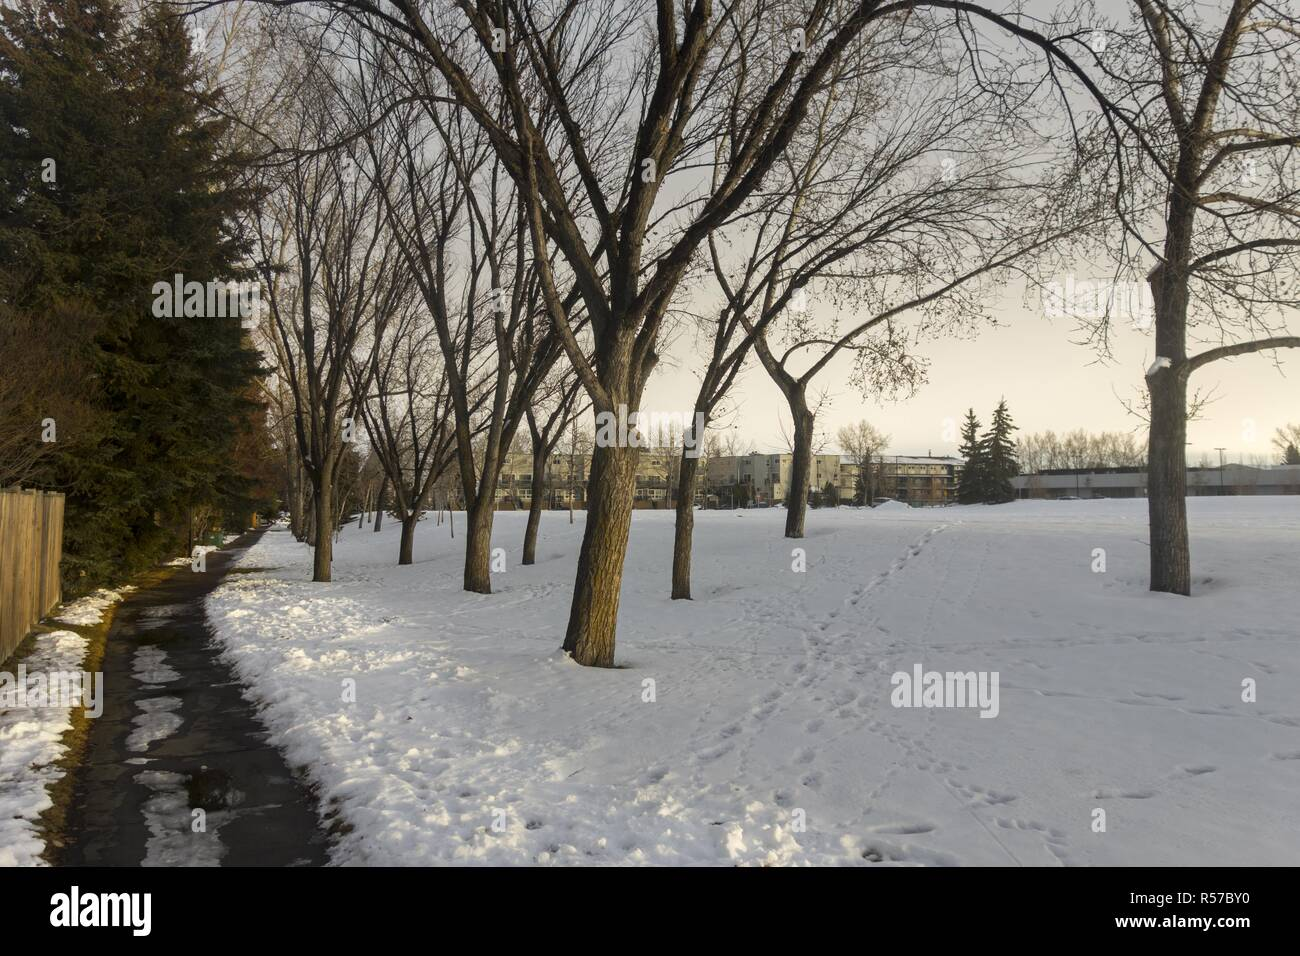 Lonely Path in snowy park and barren aspen tree branches in late Fall near Market Mall in City of Calgary Alberta Canada - Stock Image